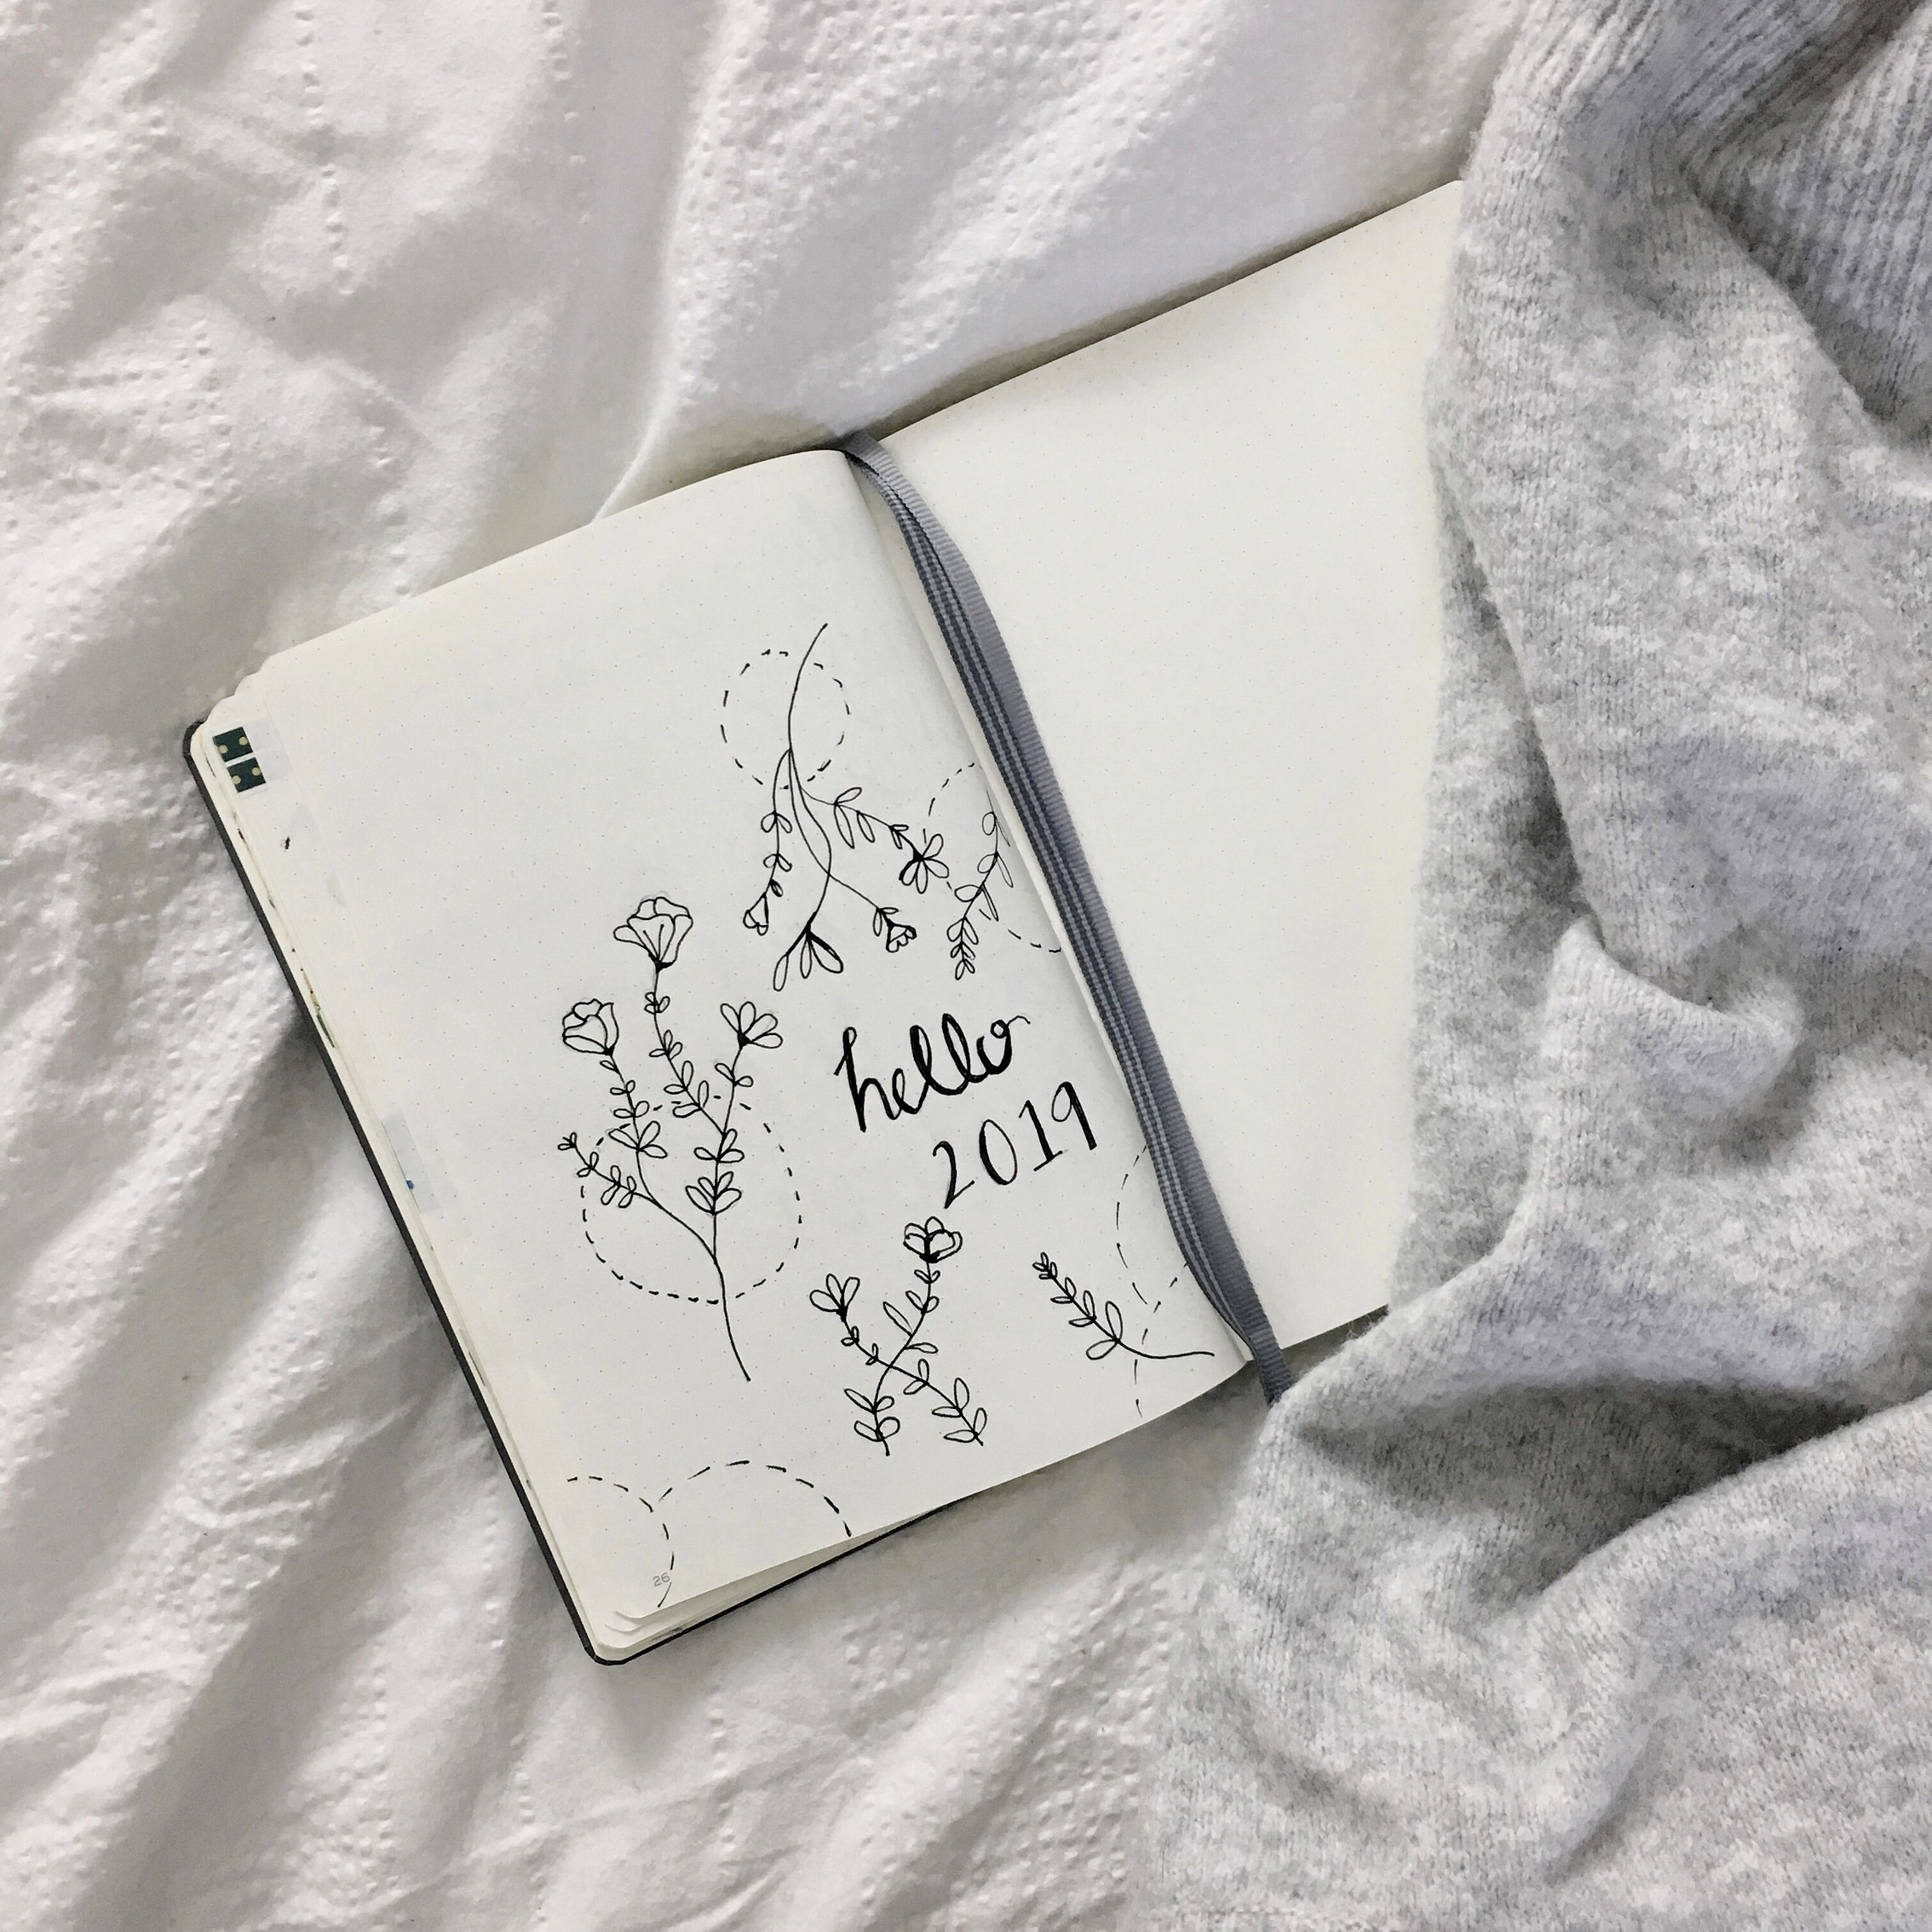 2019 bullet journal spread on a bed